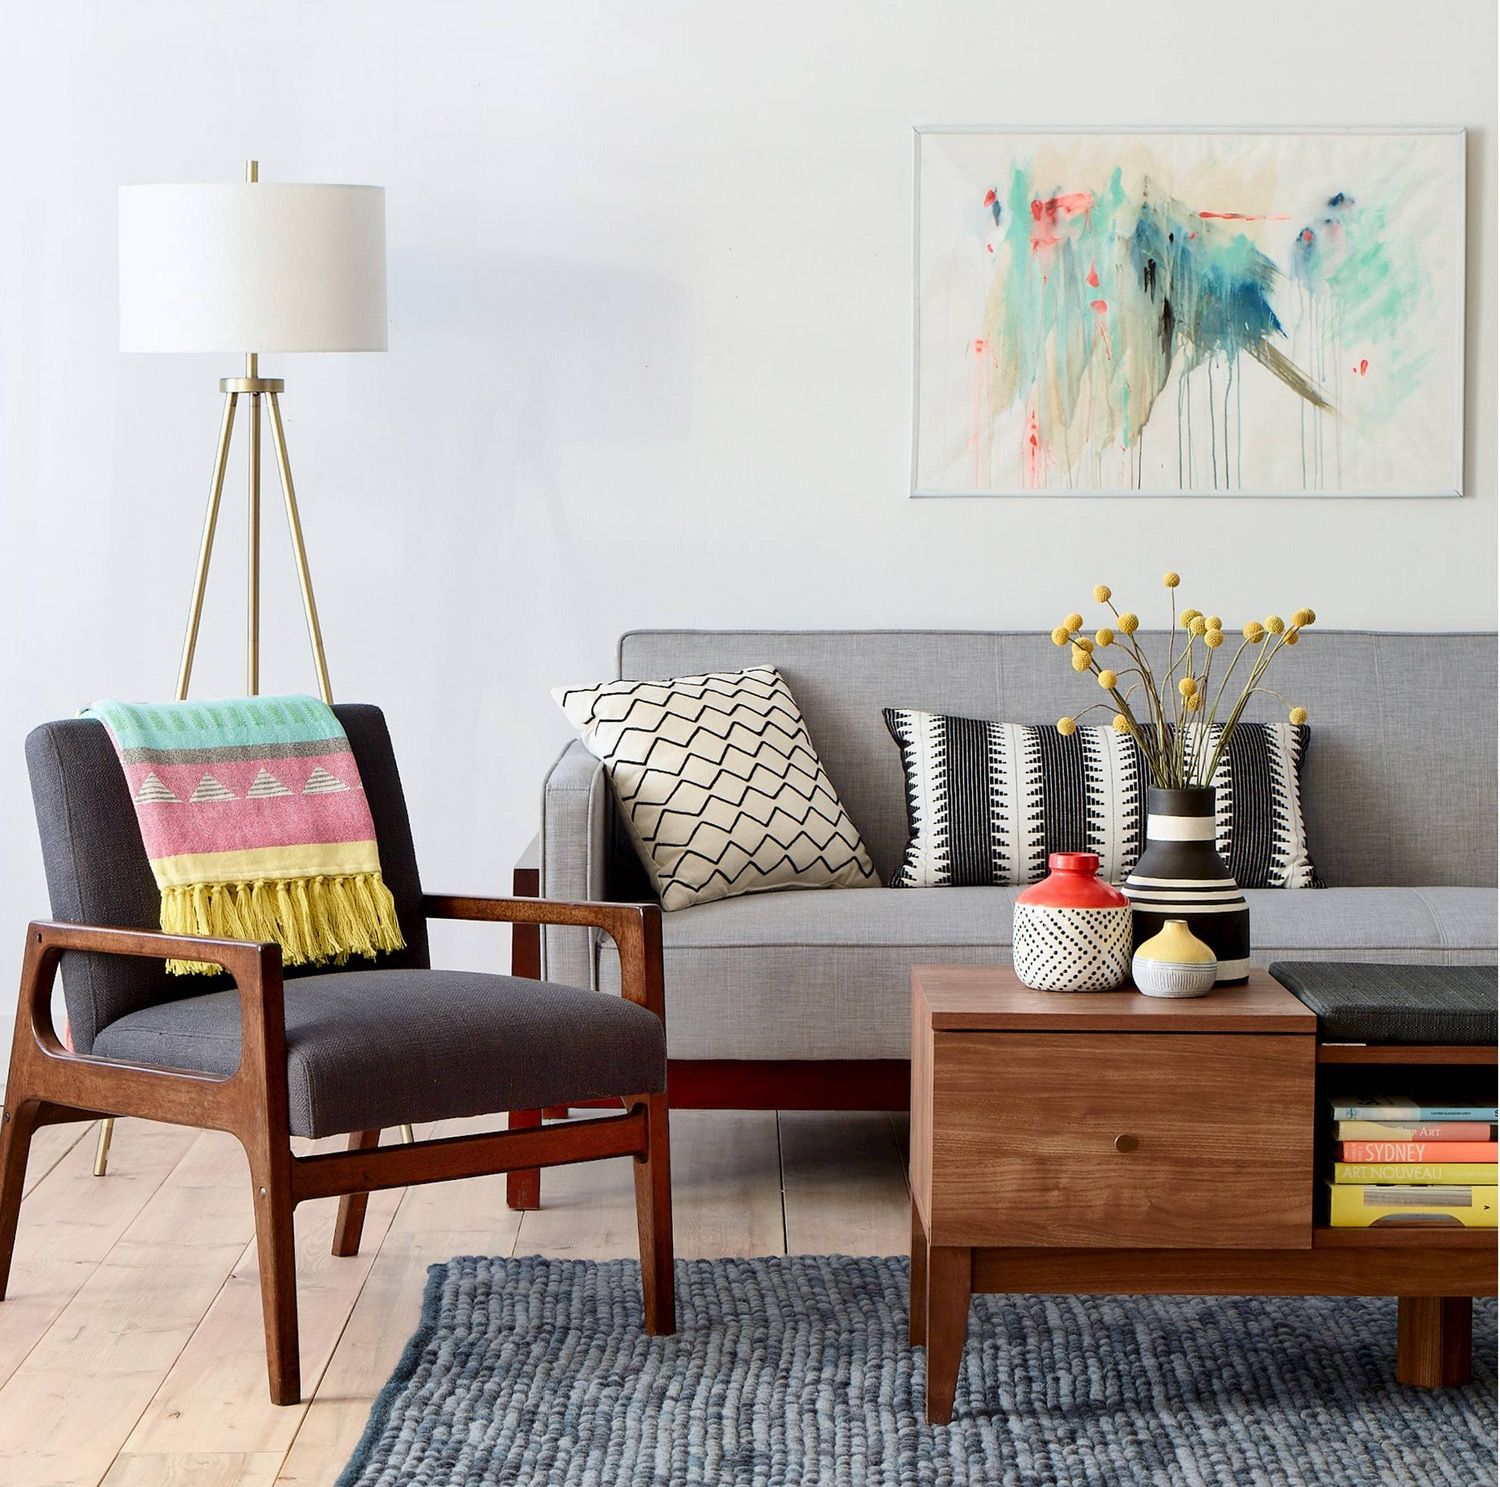 15 Modern Living Room Ideas: Ends Today! What To Snag At Target's Huge Furniture Sale